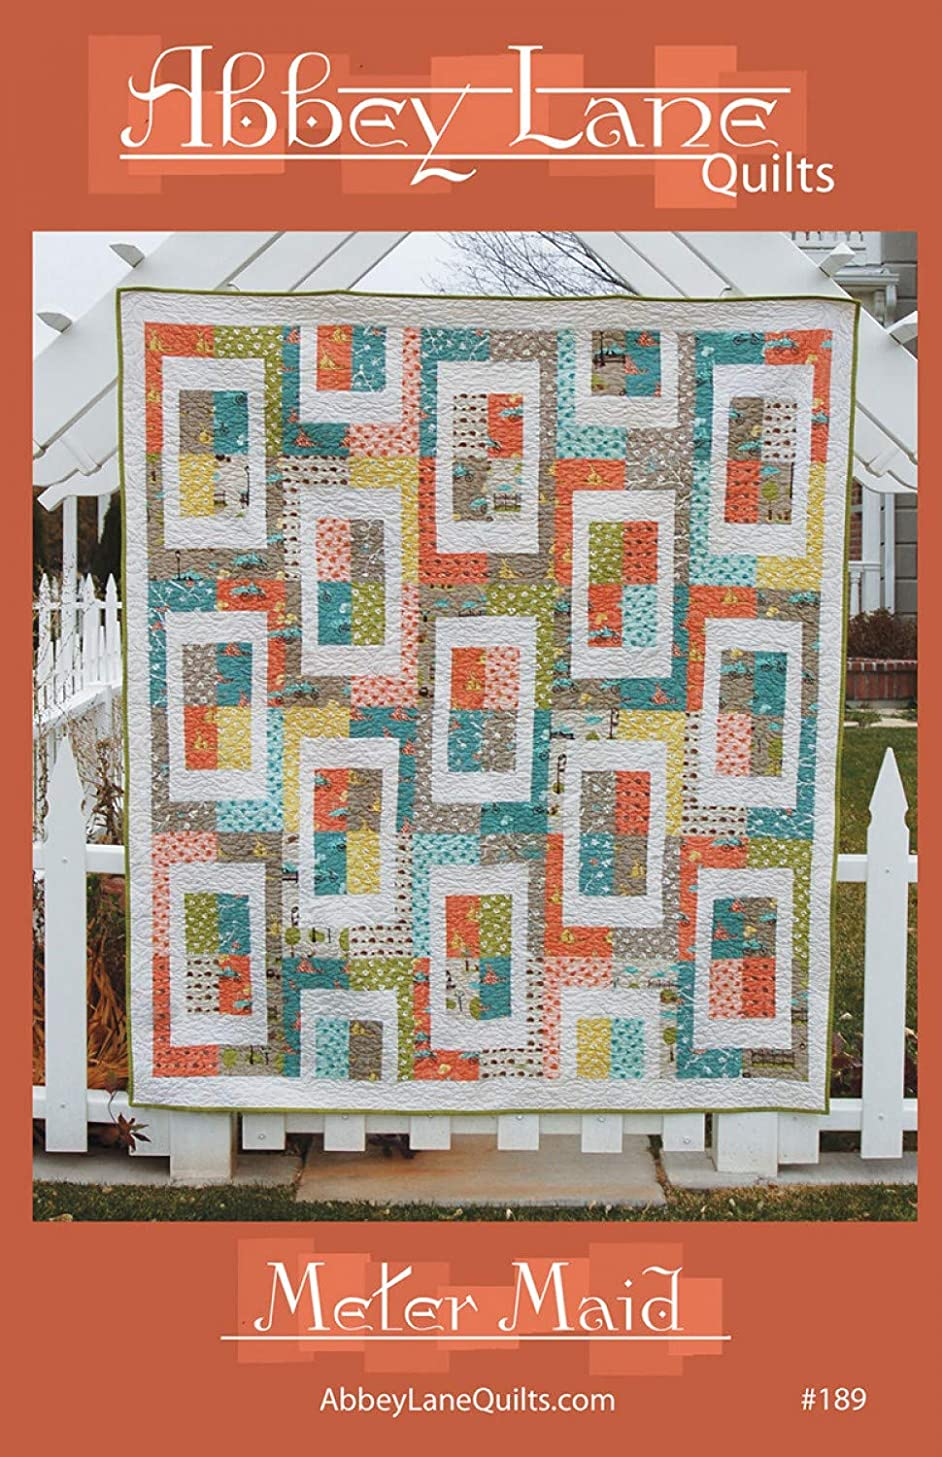 Meter Maid Quilt Pattern by Abbey Lane Quilts #189 64